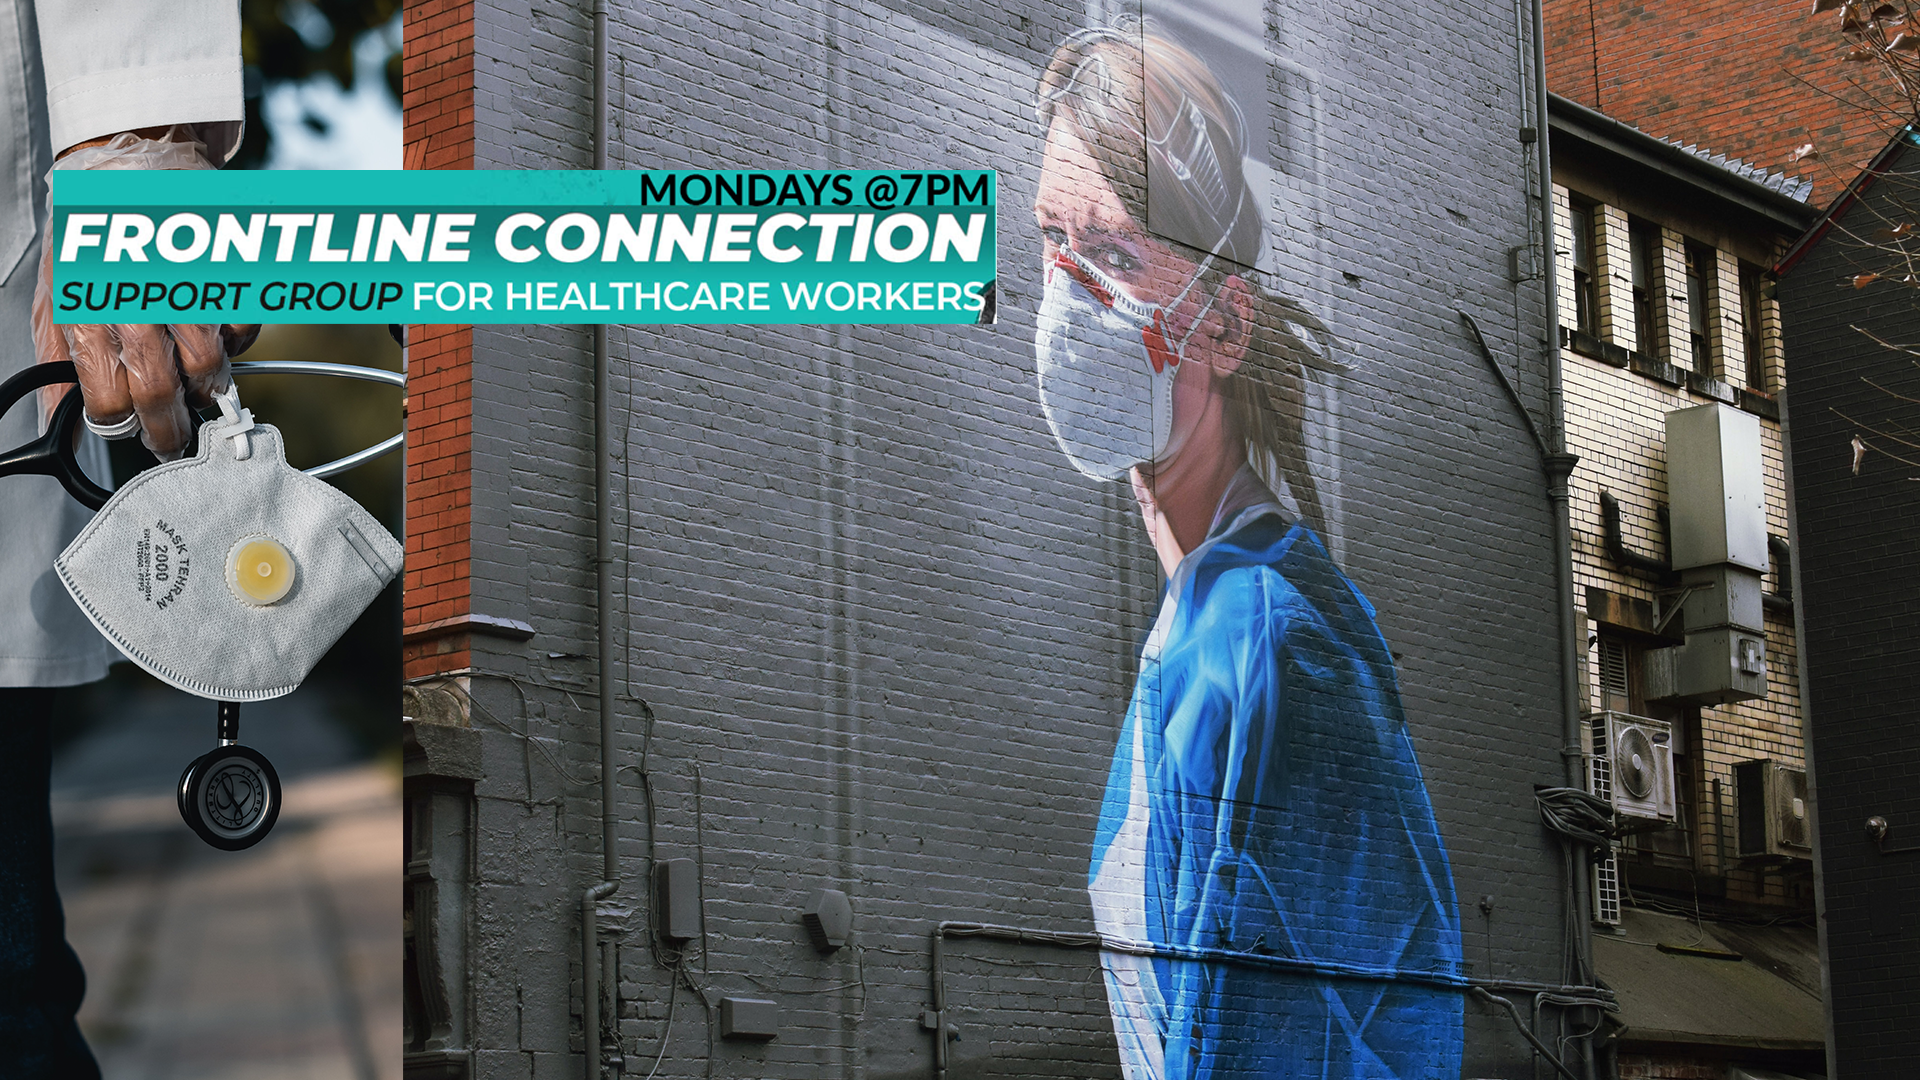 1FrontlineConnection Support Group Mondays ON THE FRONTLINE | Support Group for Healthcare Workers - Mondays @7PM - Online